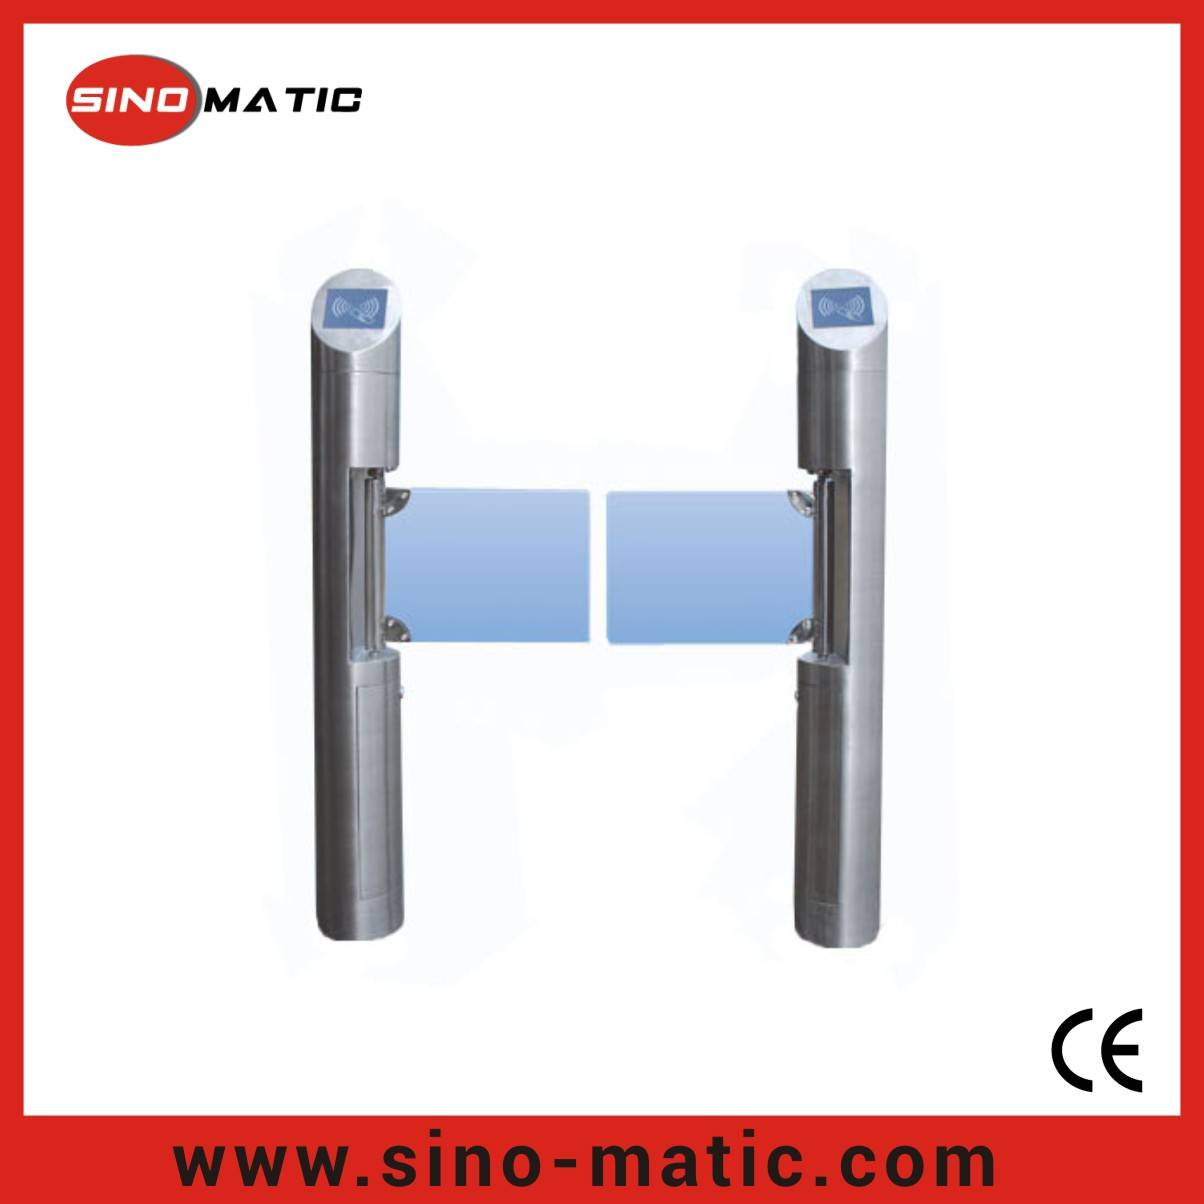 316 Stainless Steel China Factory Security Access Control Swing Barrier